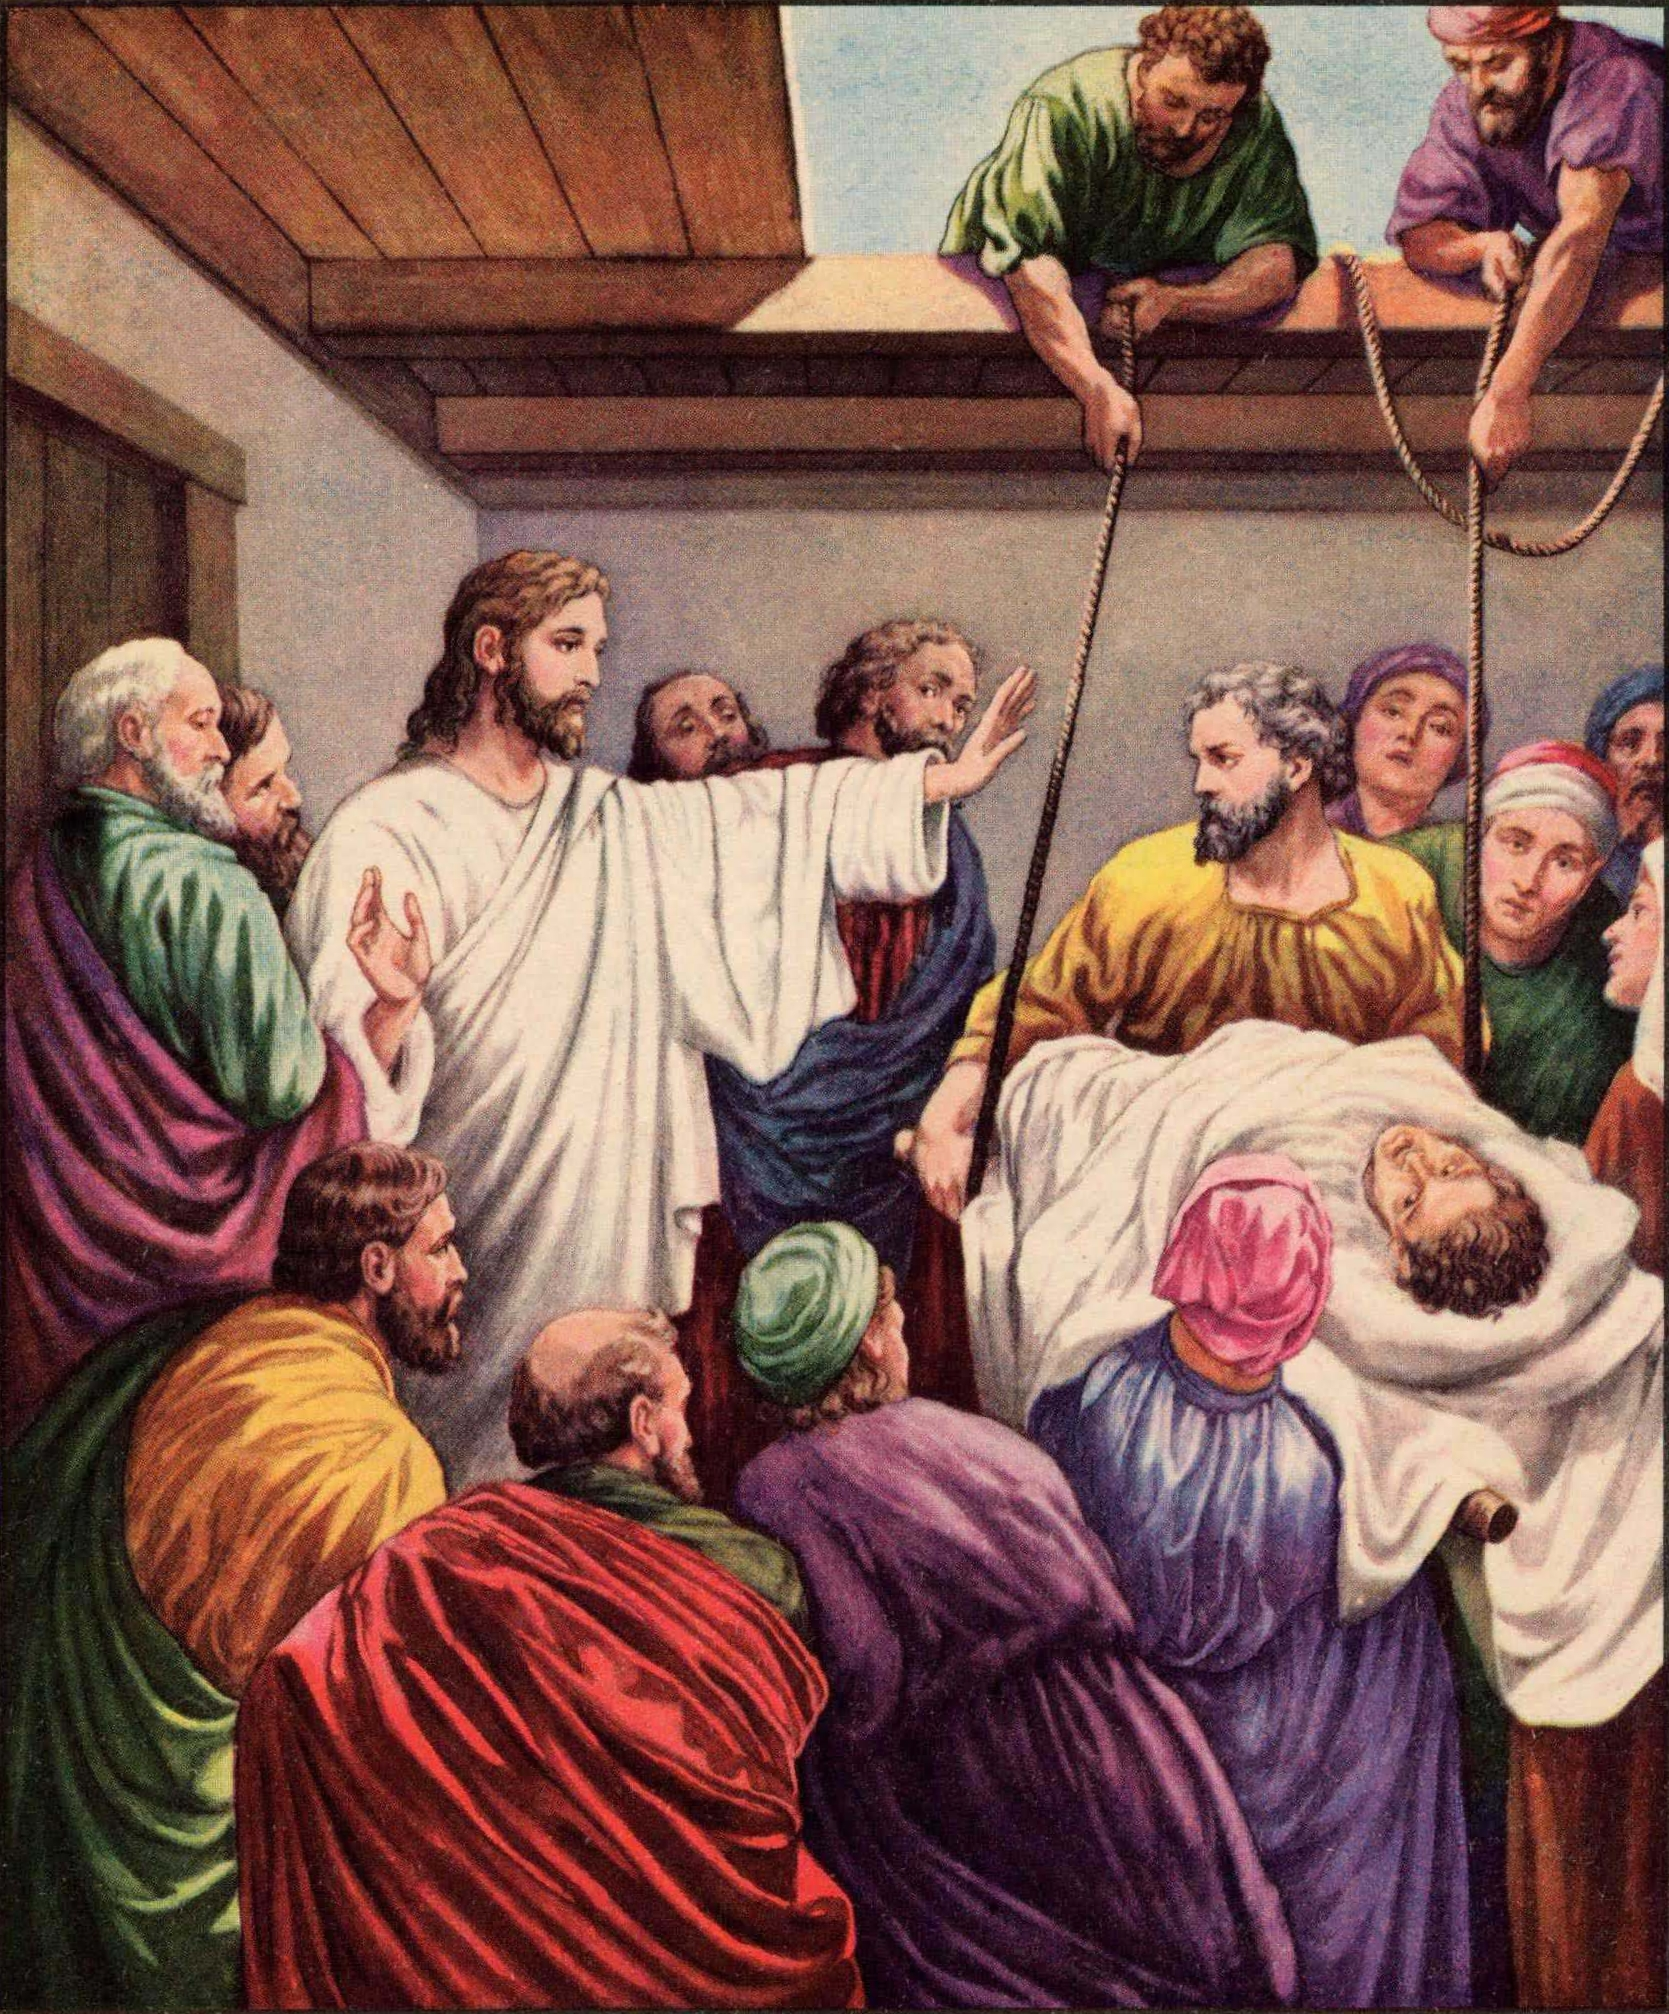 File:Jesus Heals Paralytic and Forgives Sin.jpg - The Work of ...